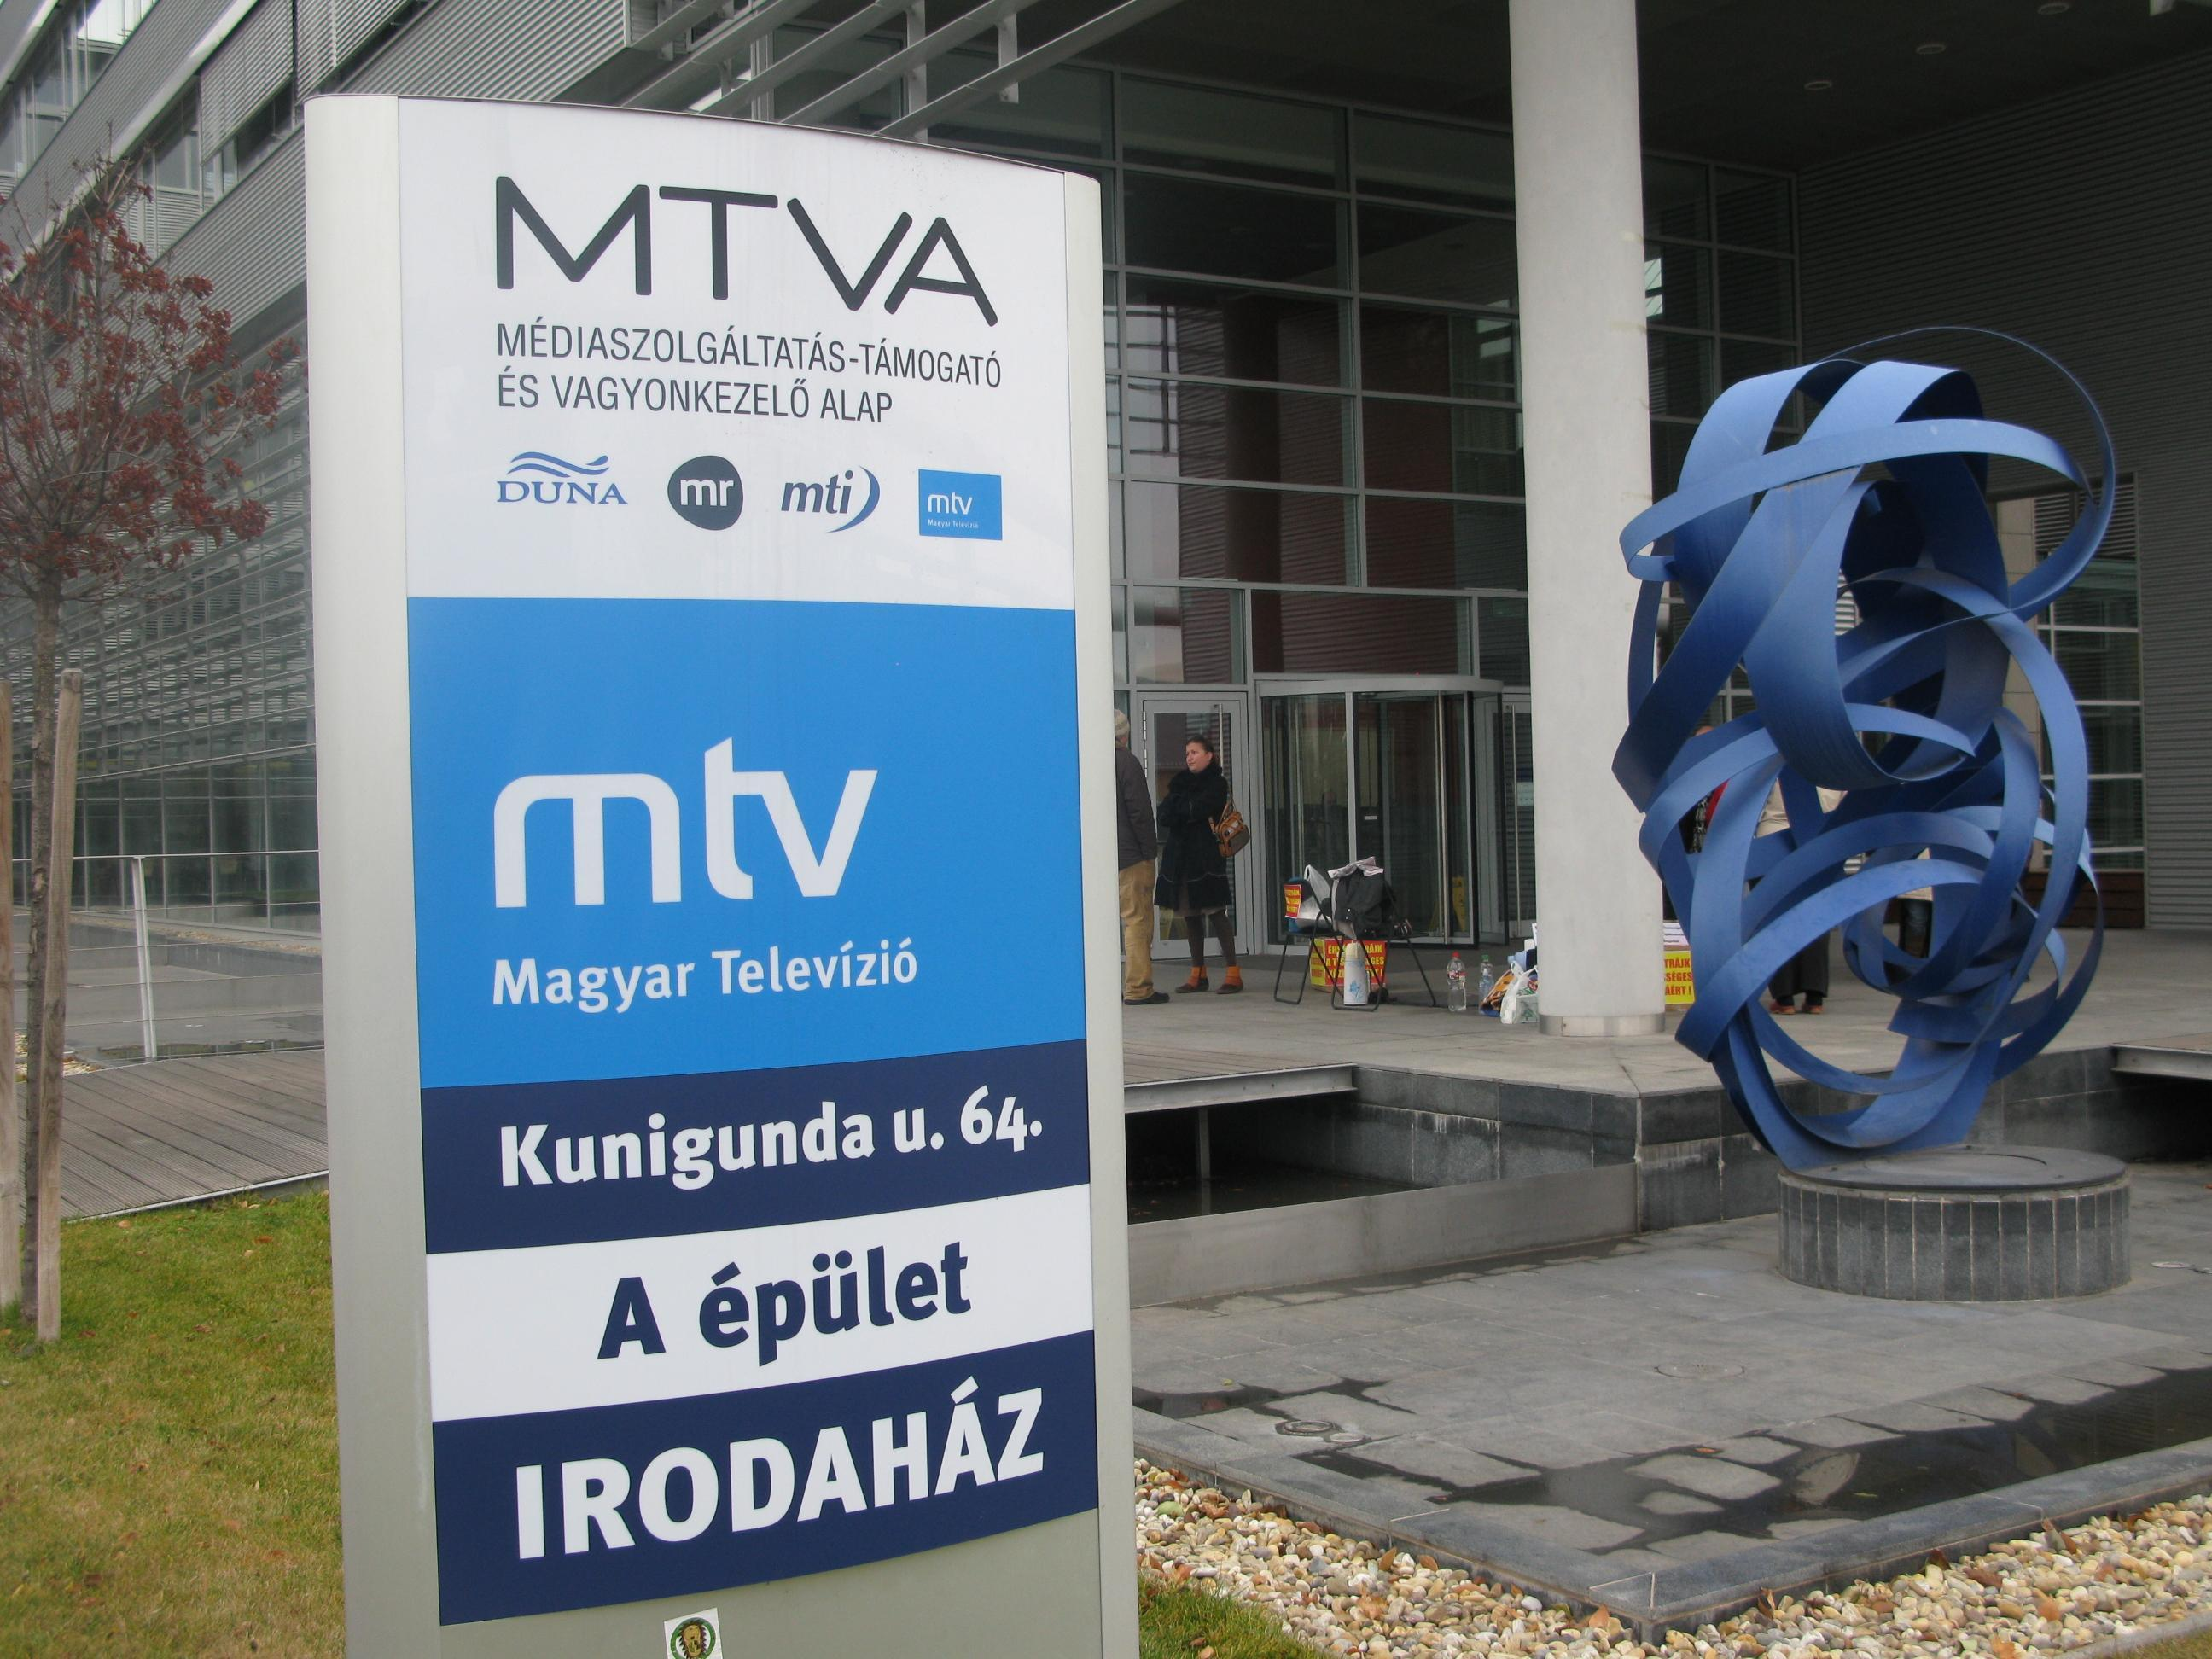 MTVA Reports Assault On Newsreader To Hungarian Police